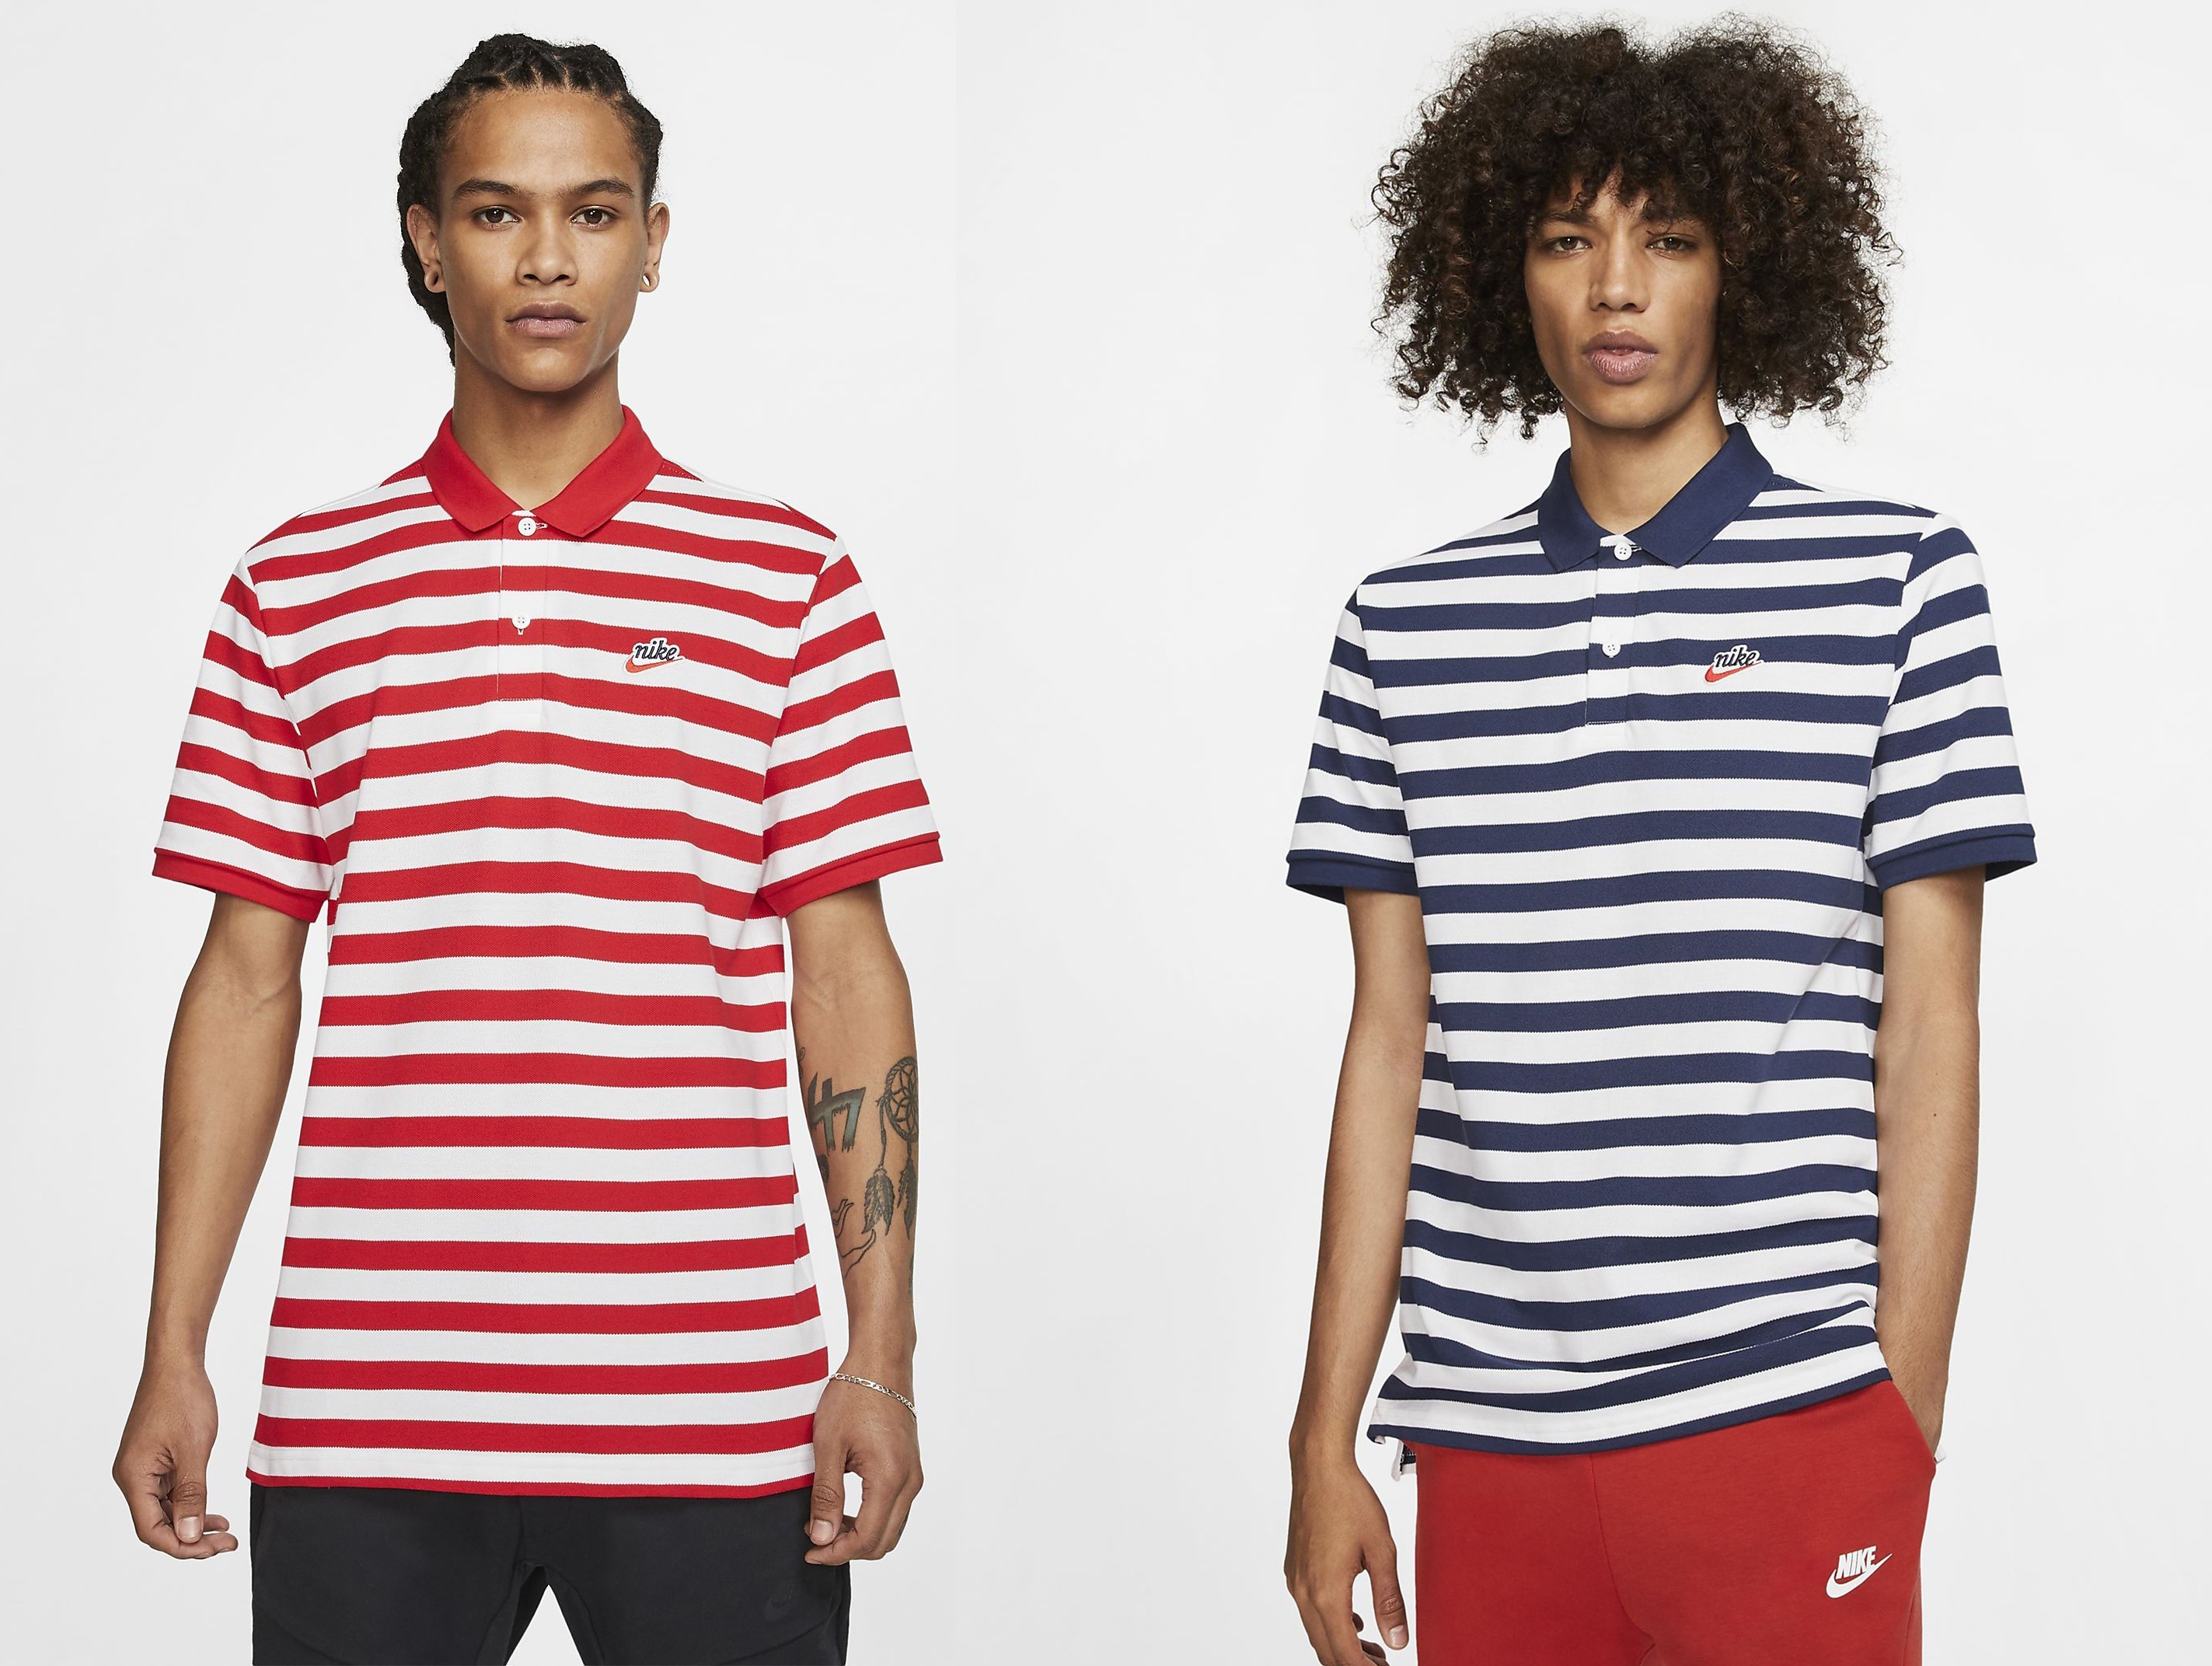 d2430bc3a5999 The Piqué Polo features White Stripes around the tee, crafted from soft  cotton fabric, with a fold-over collar and 2-button placket. The  embroidered Nike ...